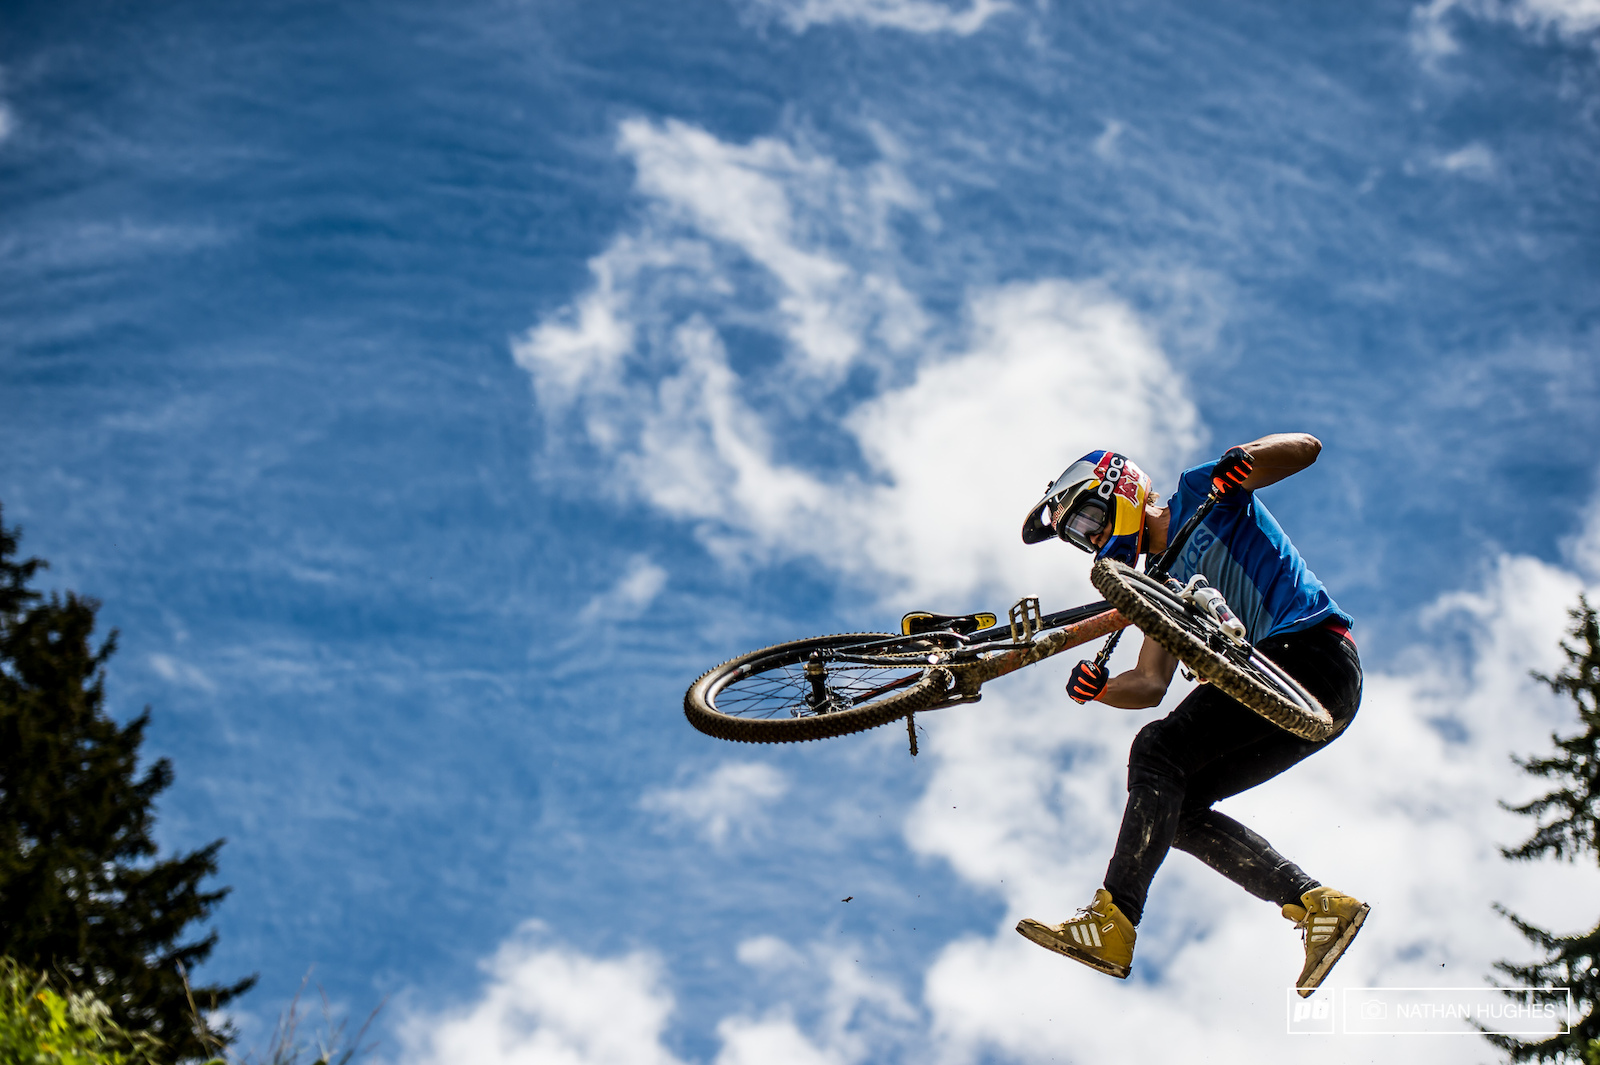 Martin Soderstrom is skipping the slopestyle this year so will be channelling all his wizardry to the speed and style.